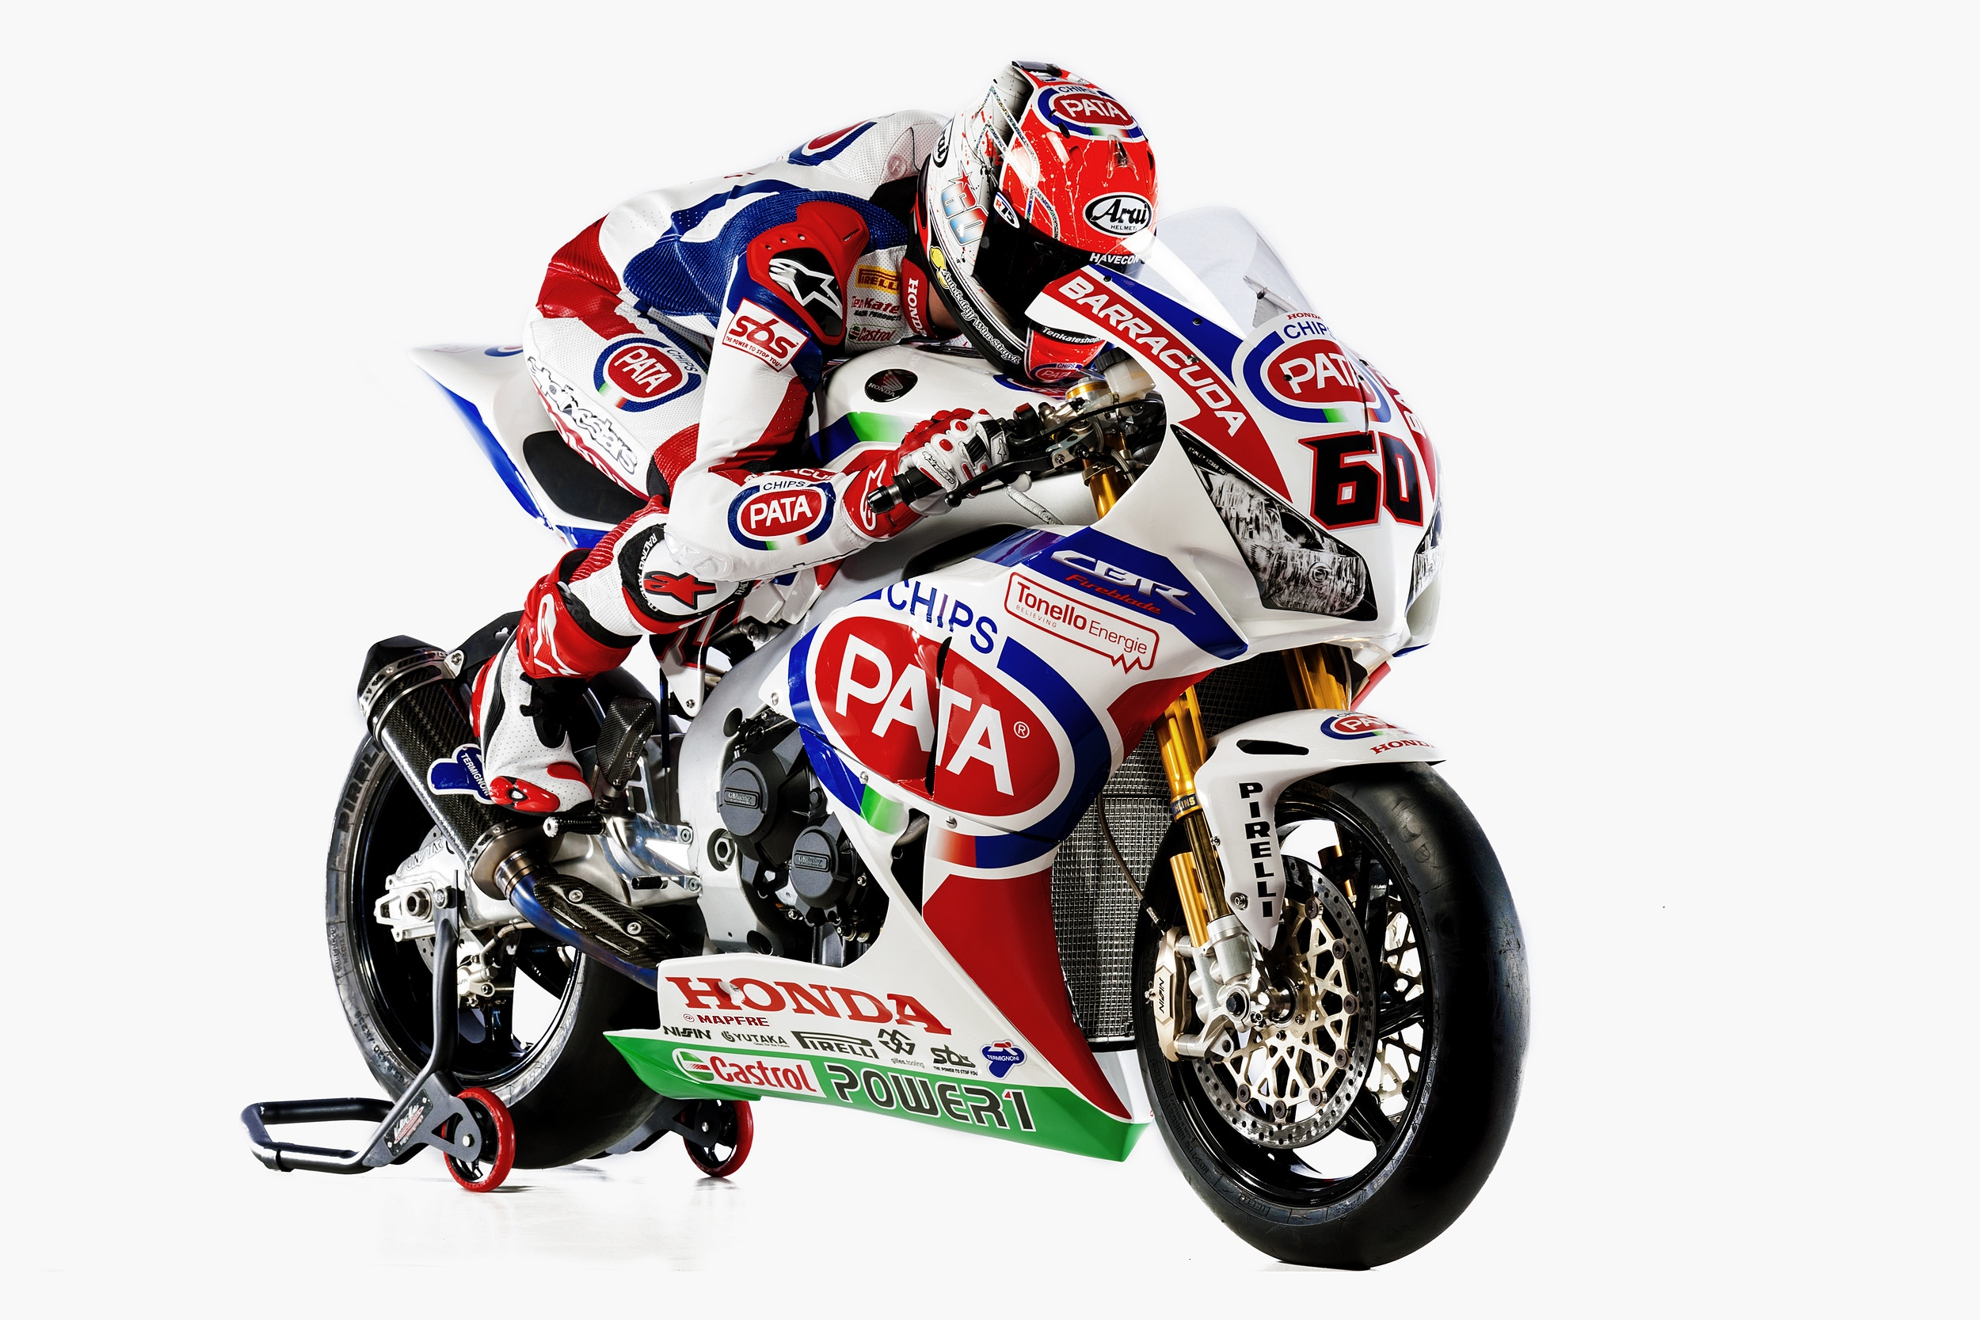 Pata-Honda-Motorcycle-2015-Team